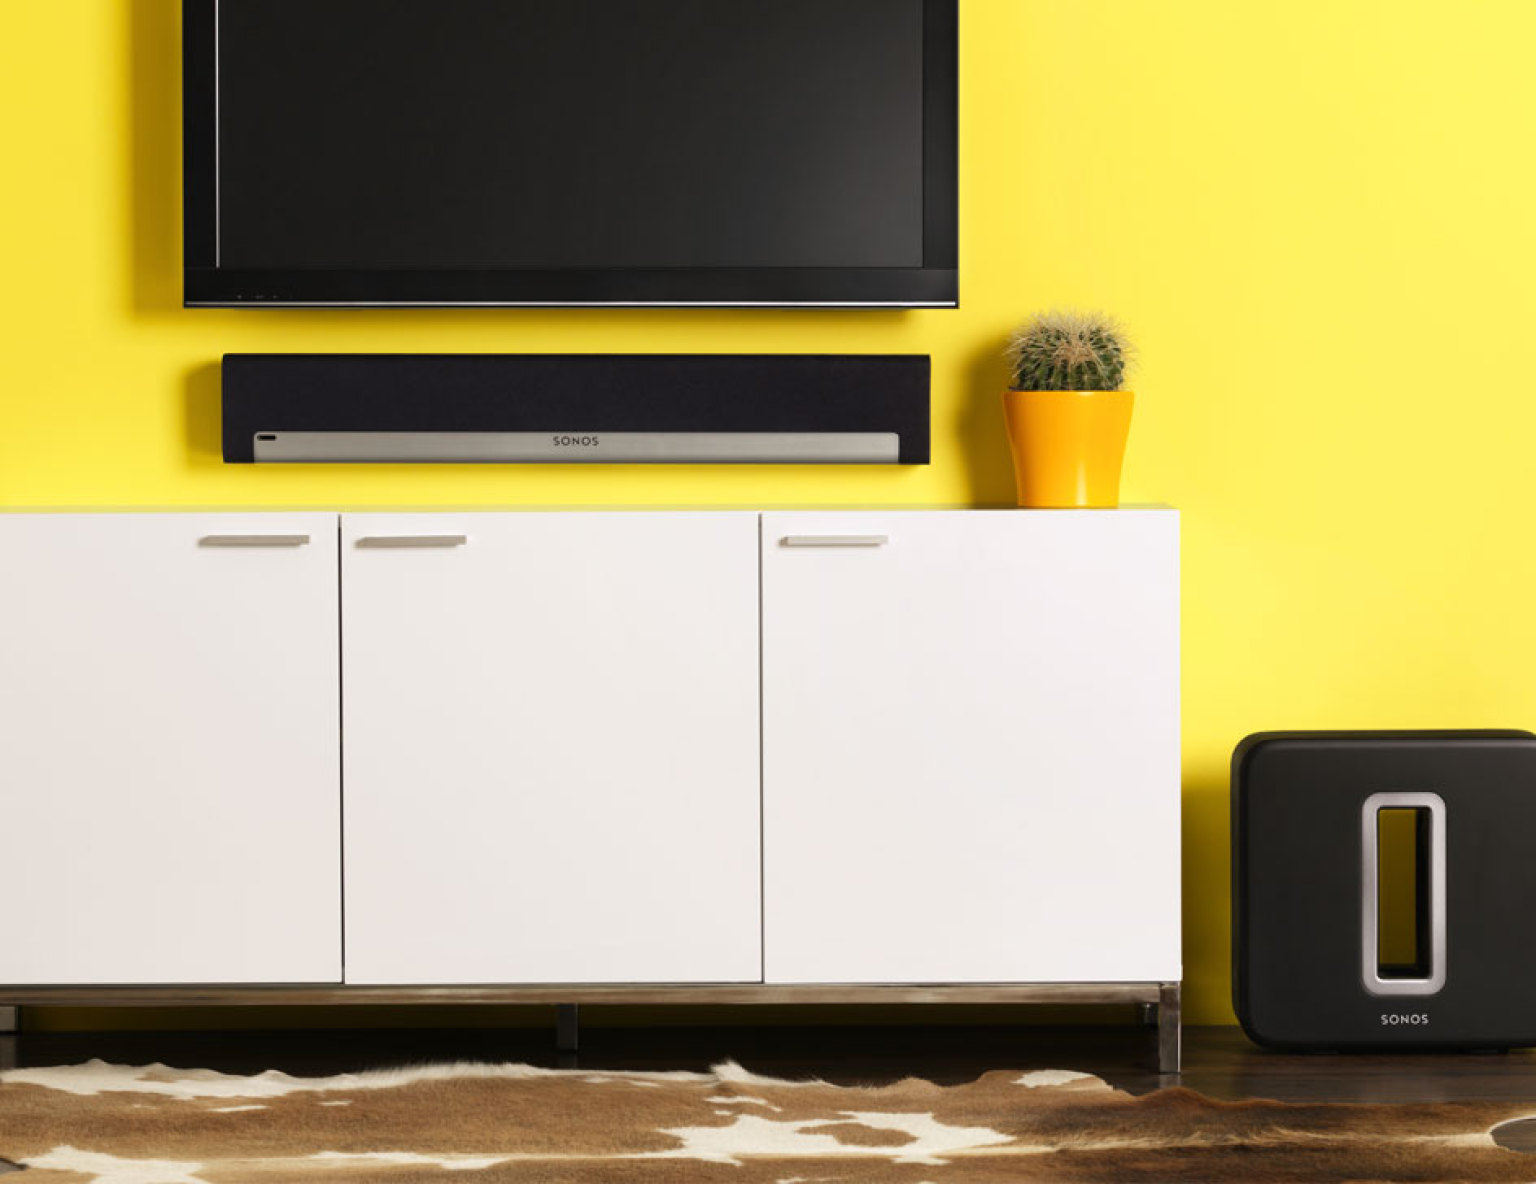 SONOS X BF - It's time to load up on SONOS wireless products for yourself and maybe that special someone for the Holiday Season - get it done early and enjoy the sweet tunes!Please see below for more info for BF (Black Friday) deals in effect: NOV 22 - 26 ONLY